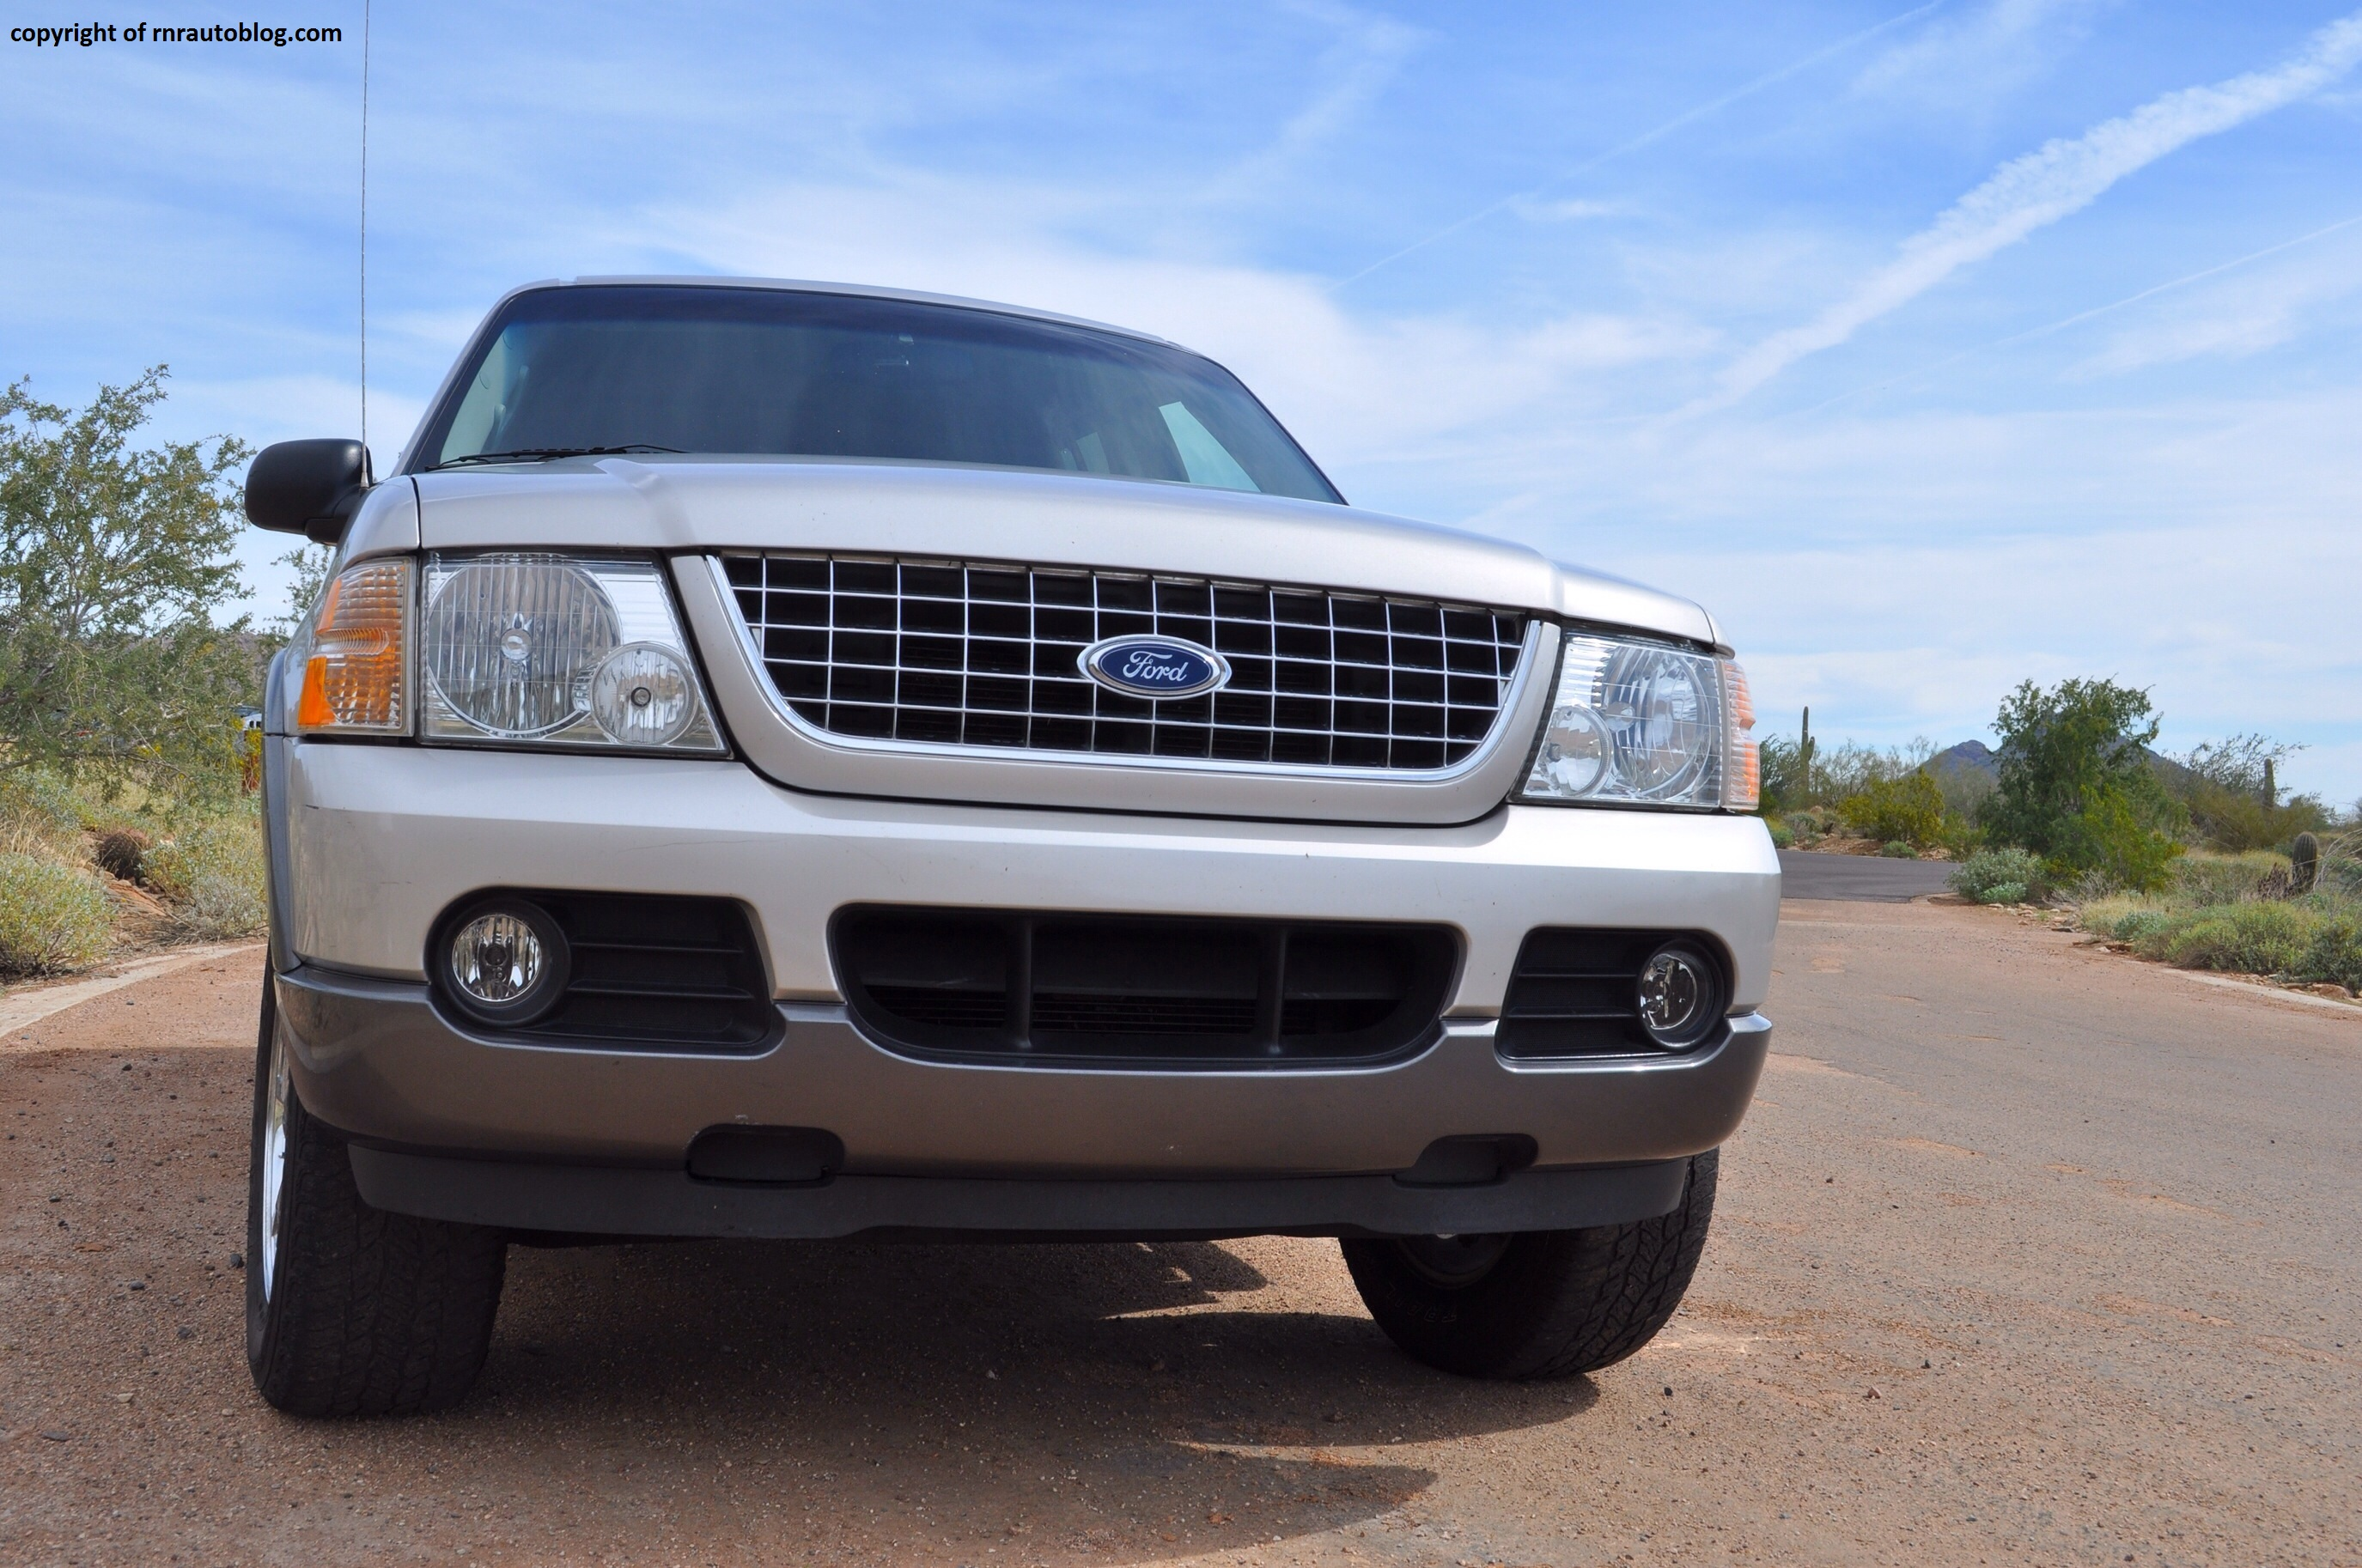 2004 ford explorer xlt review rnr automotive blog. Cars Review. Best American Auto & Cars Review